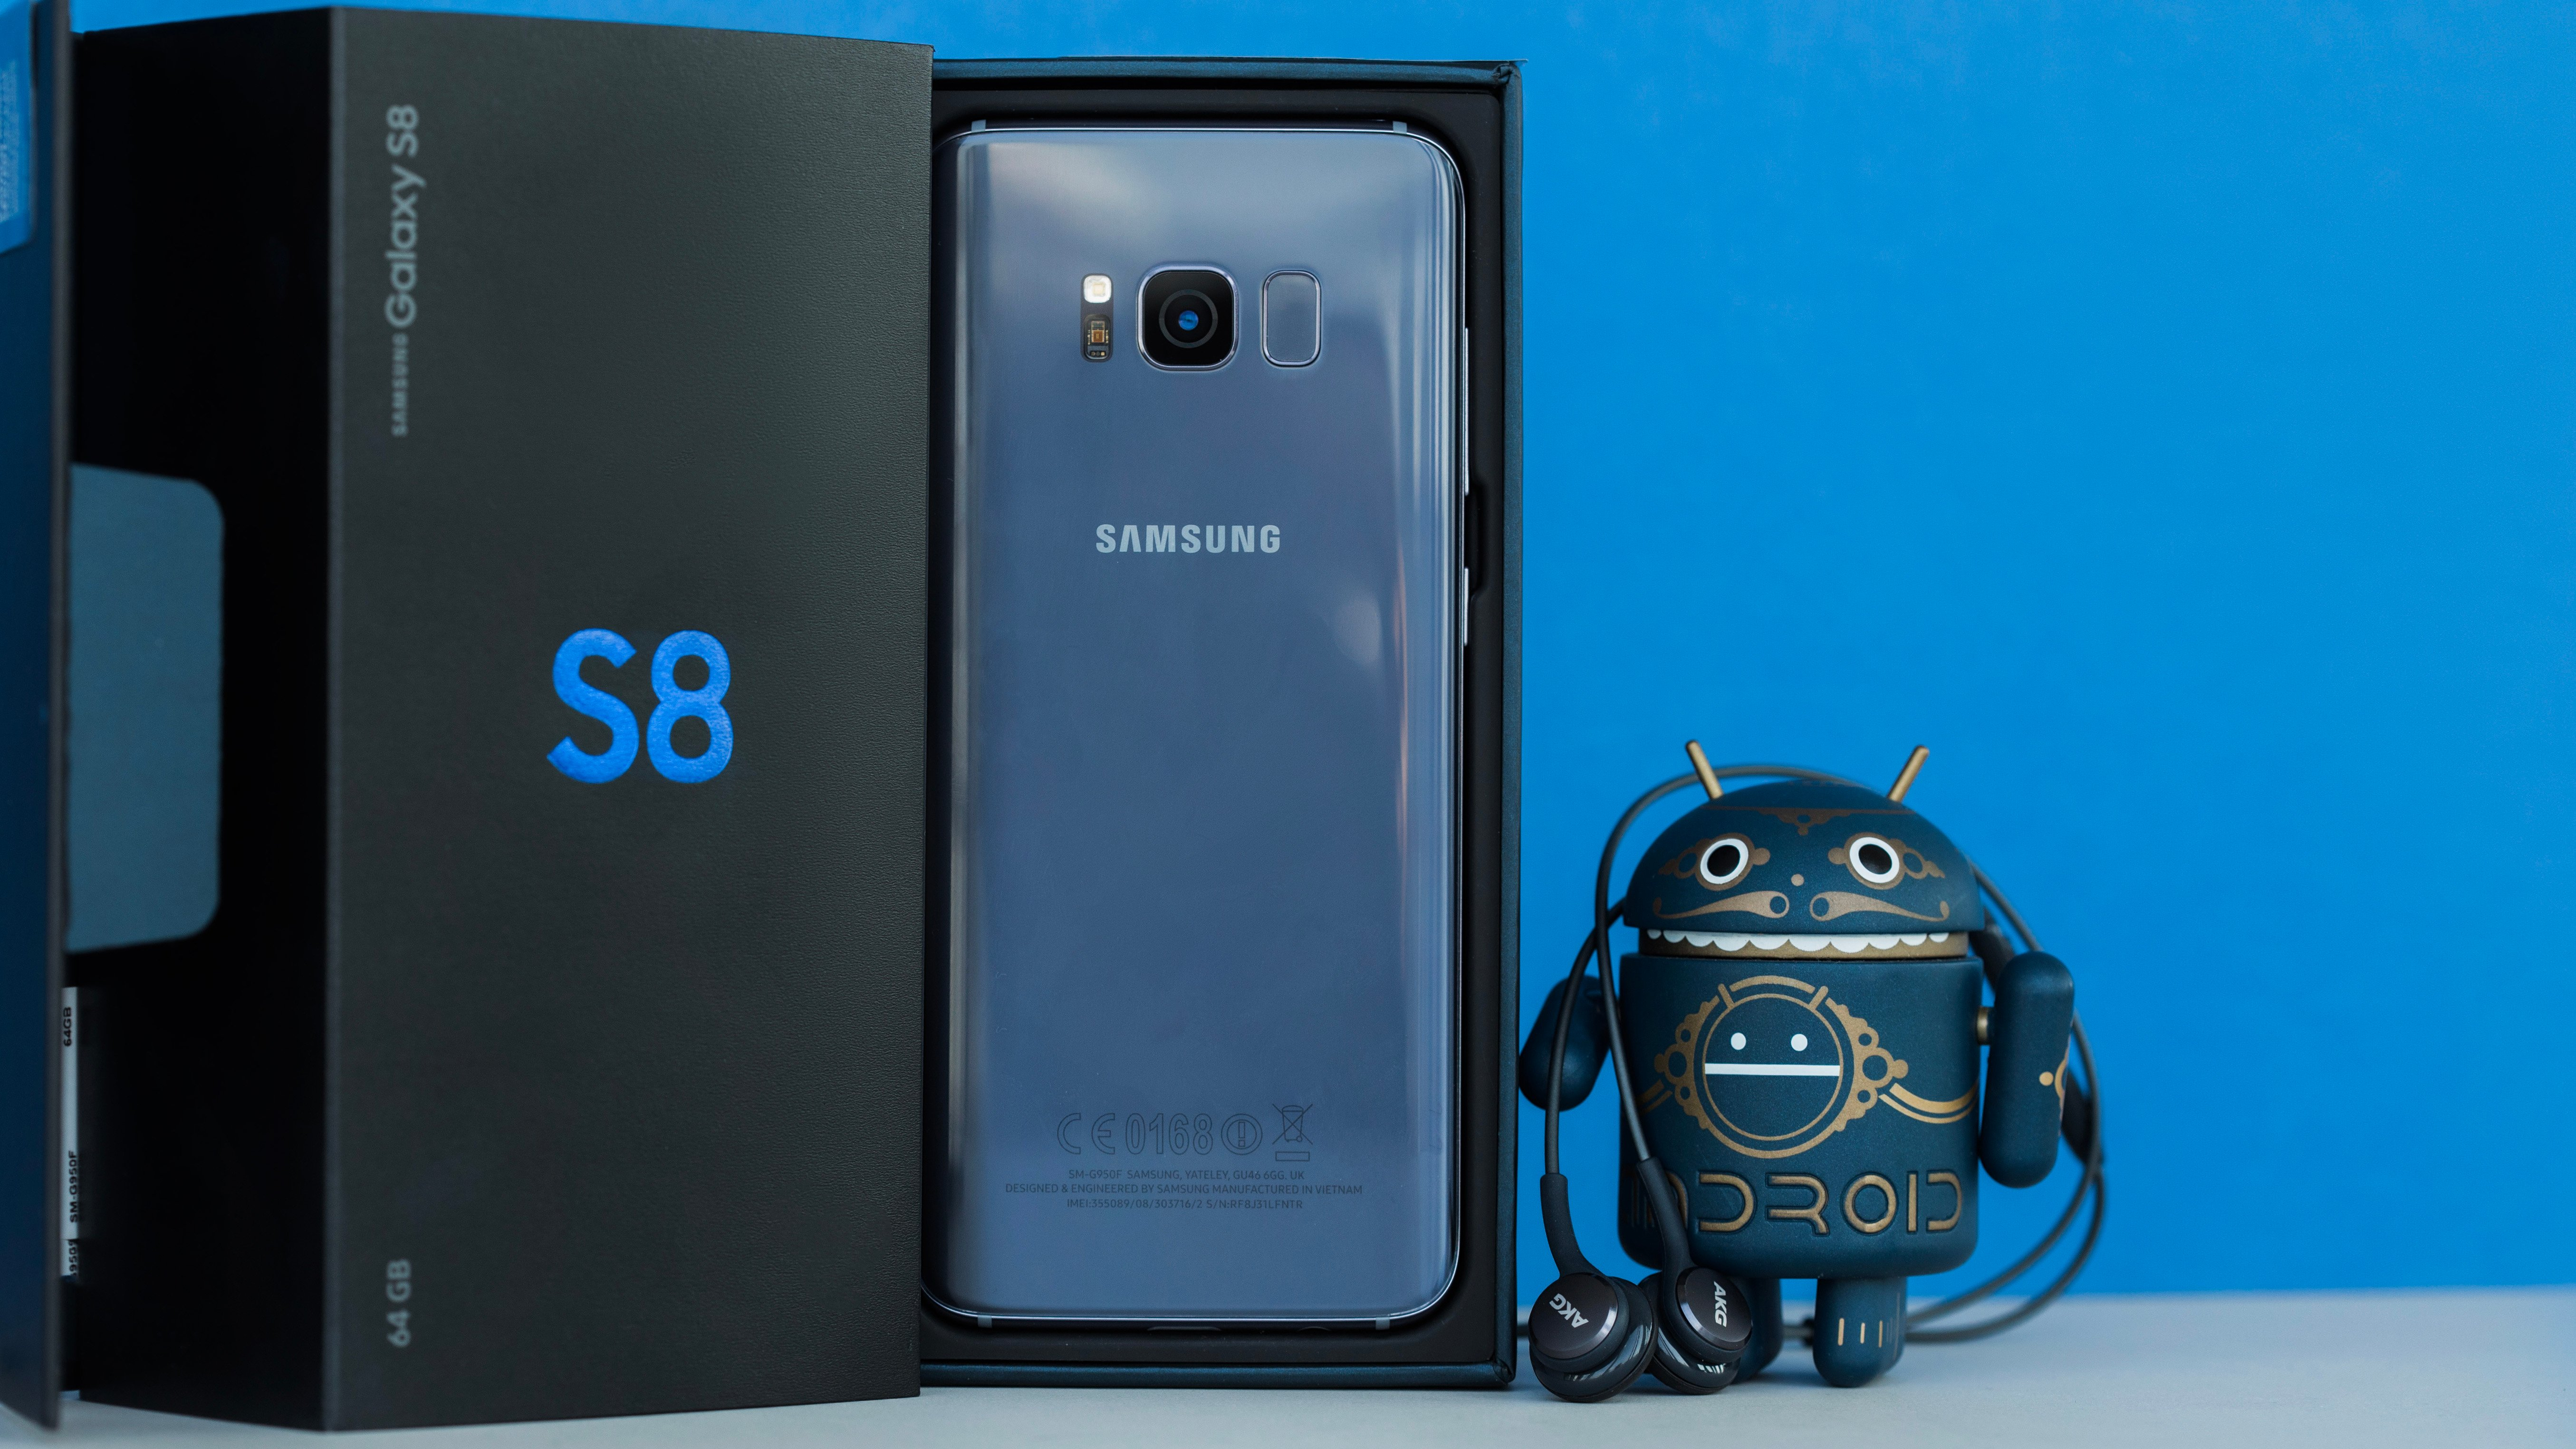 samsung galaxy s8+ user guide